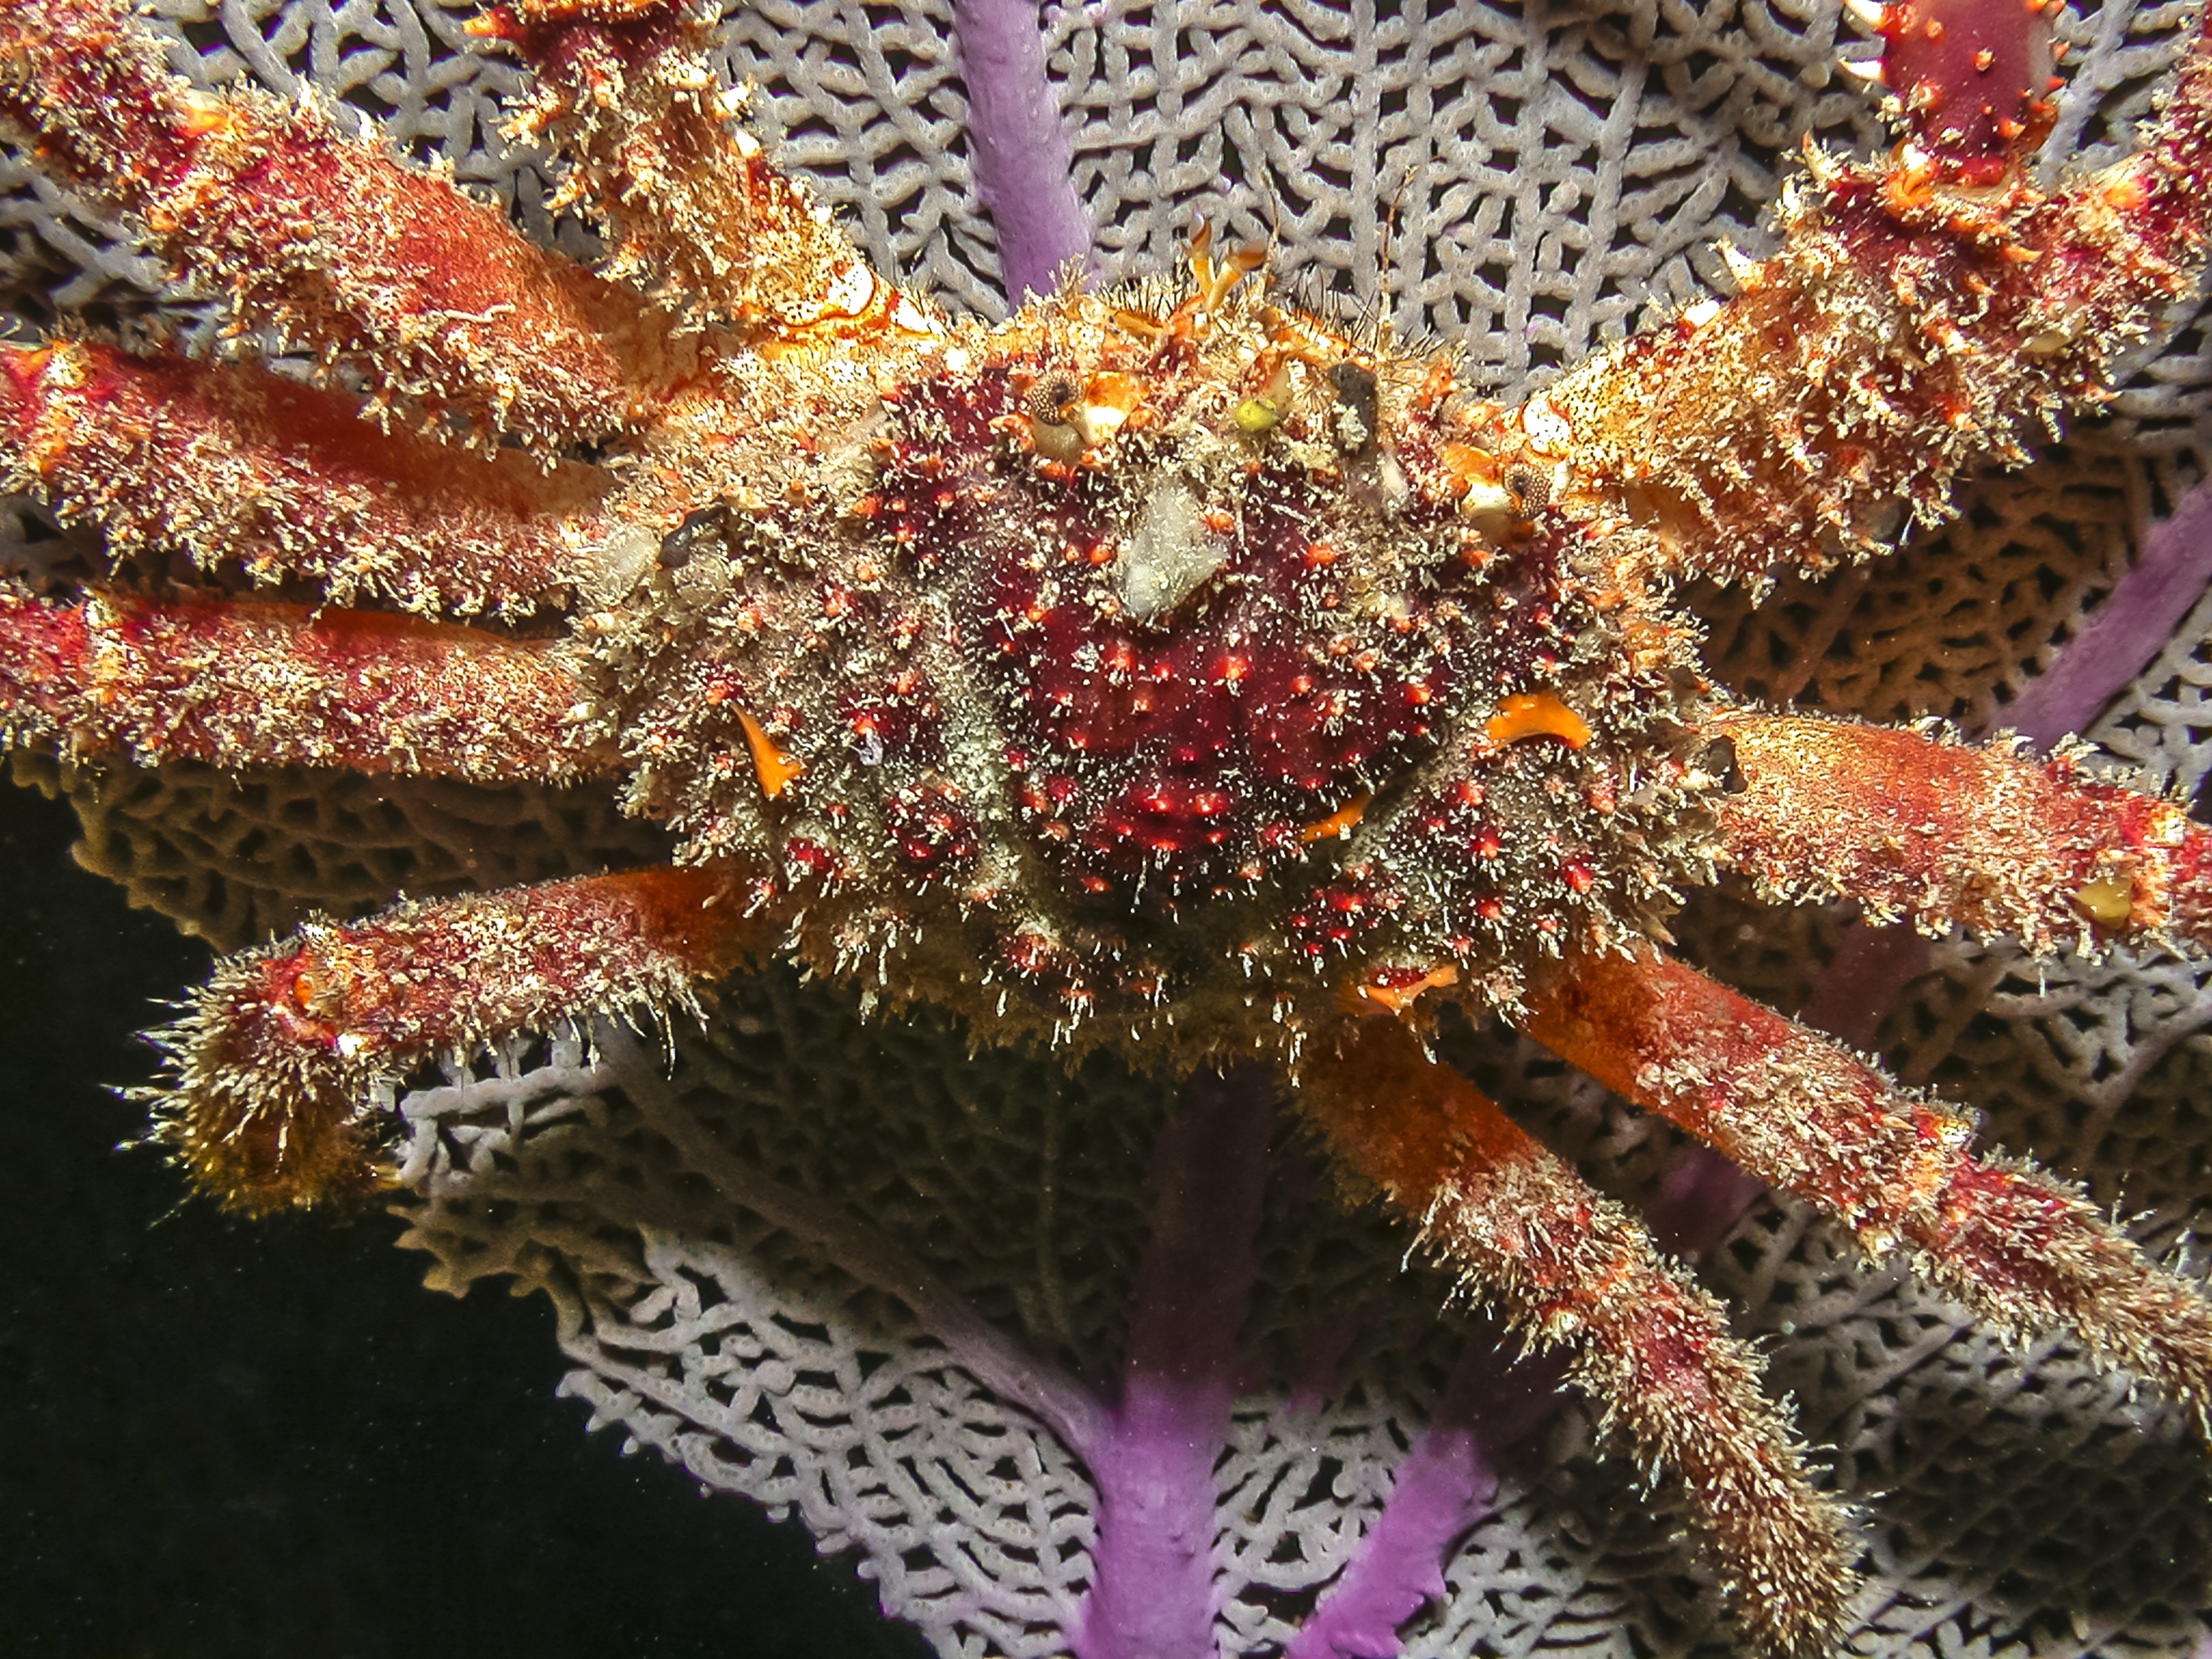 A large Caribbean king crab. Photo by John Anderson/Adobe Stock.